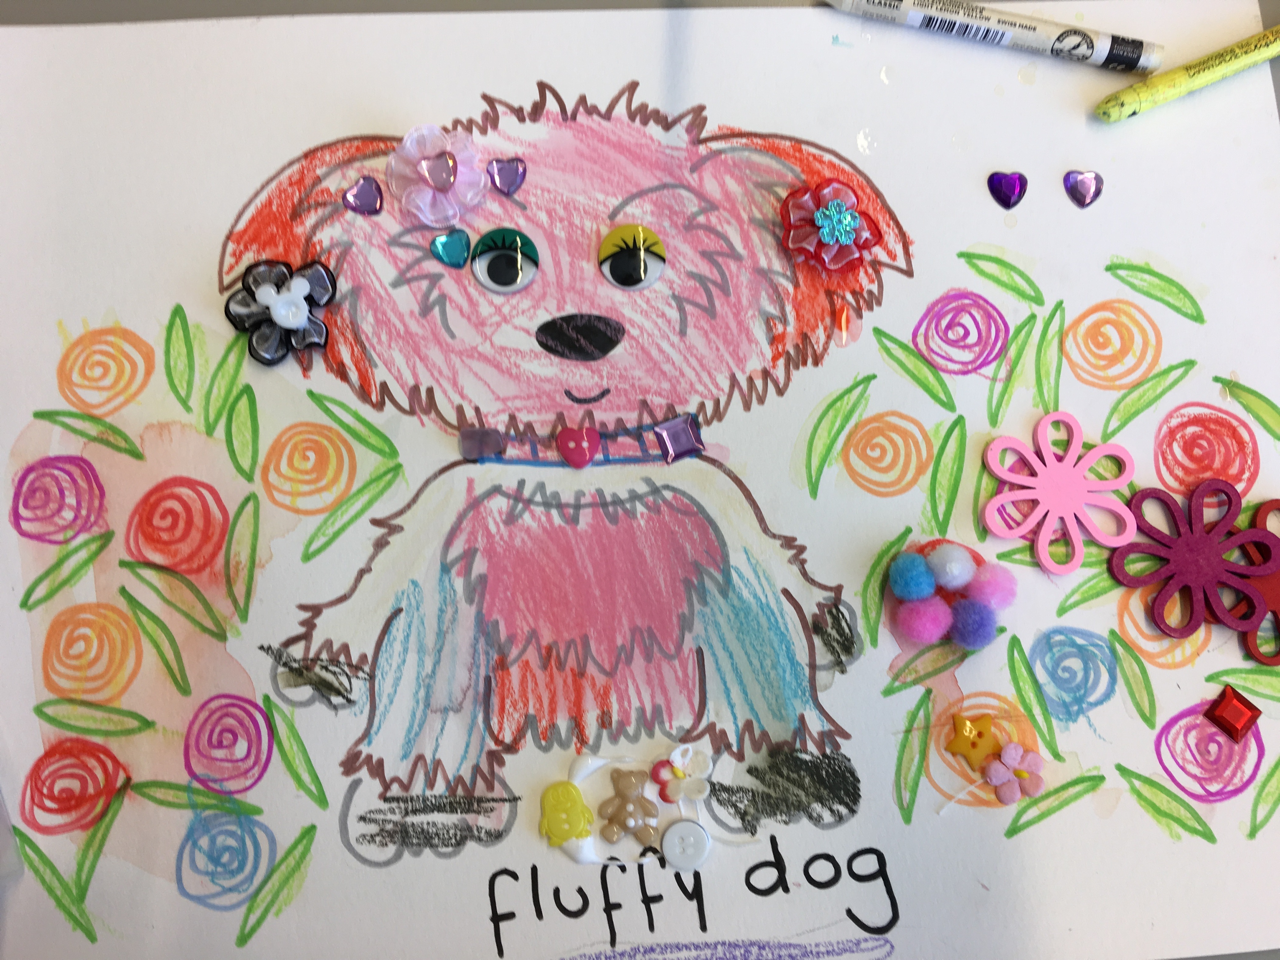 A very creative result by one of the PUPPIES event participants.